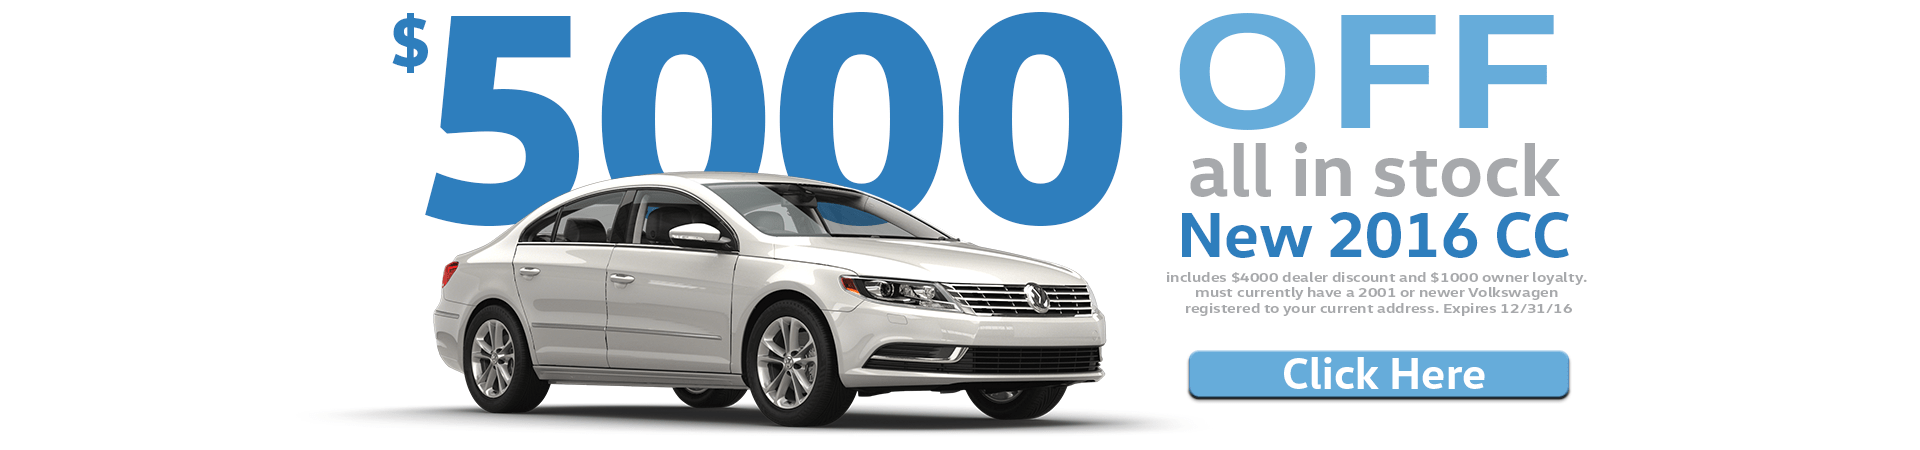 $5000 off all New 2016 CC